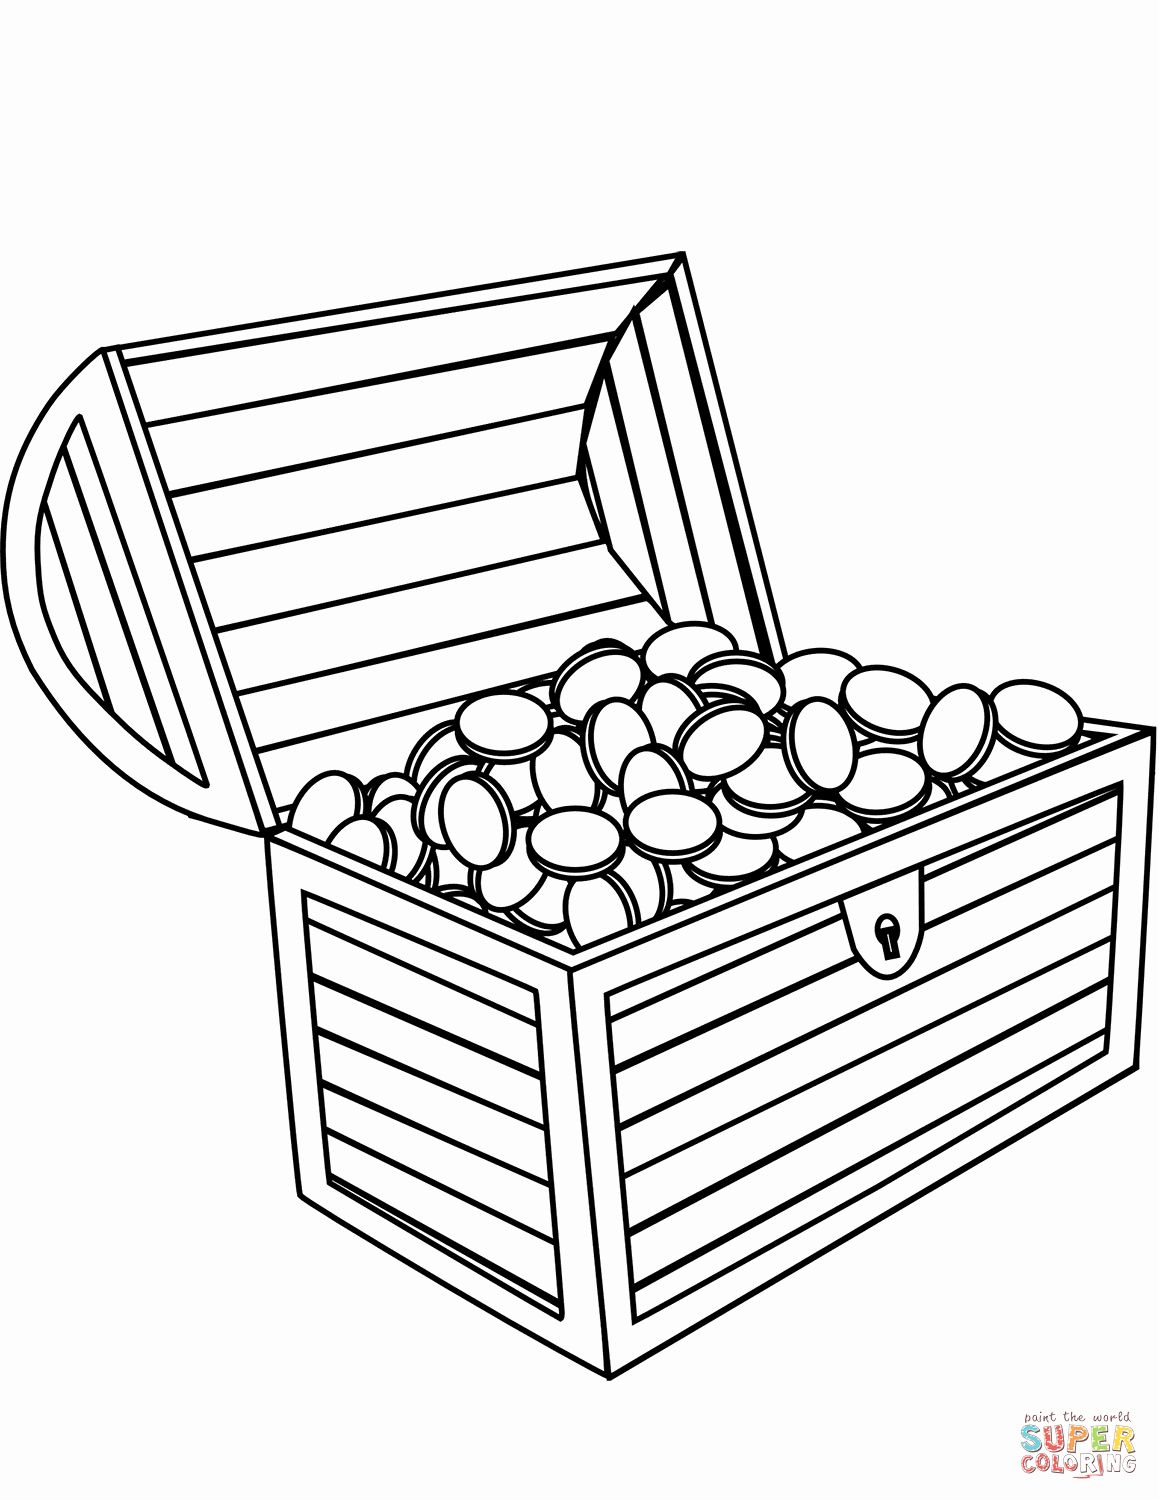 32 Treasure Chest Coloring Page